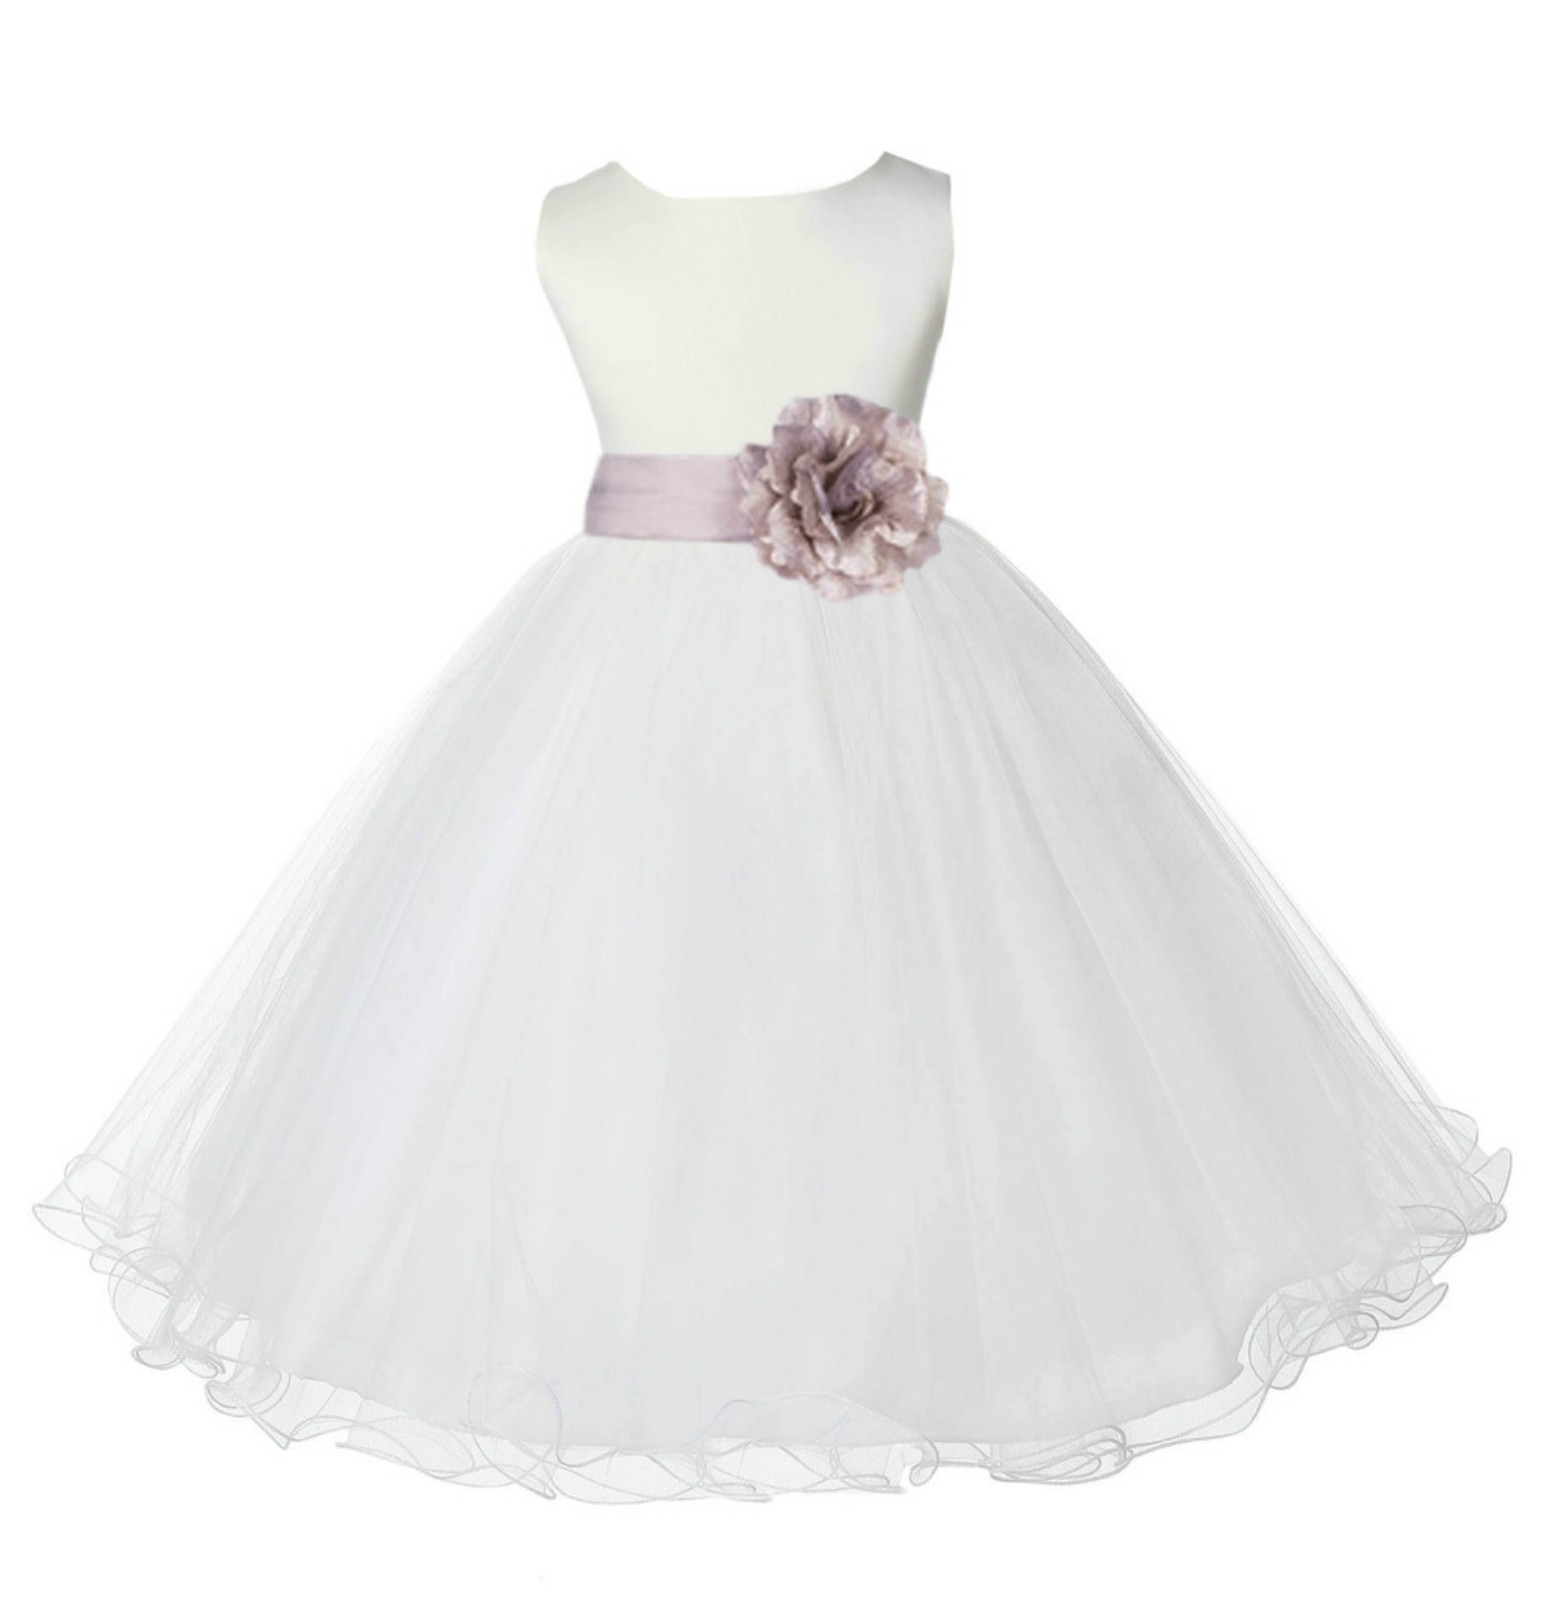 Ivory/Biscuit Tulle Rattail Edge Flower Girl Dress Pageant Recital 829S